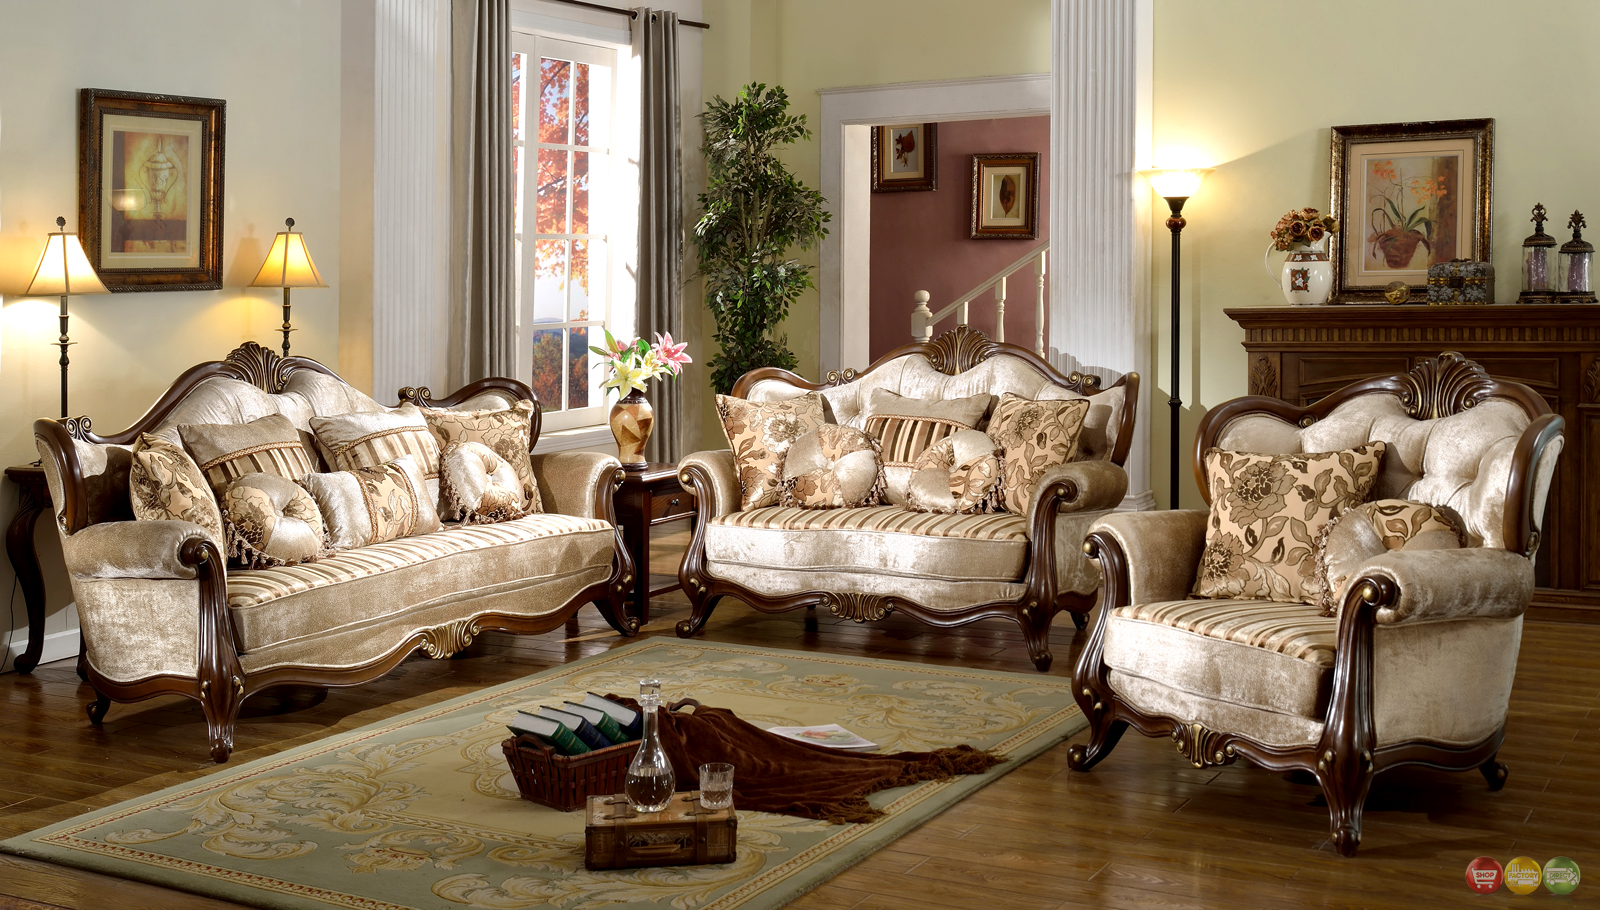 French Provincial Formal Antique Style Living Room Furniture Set